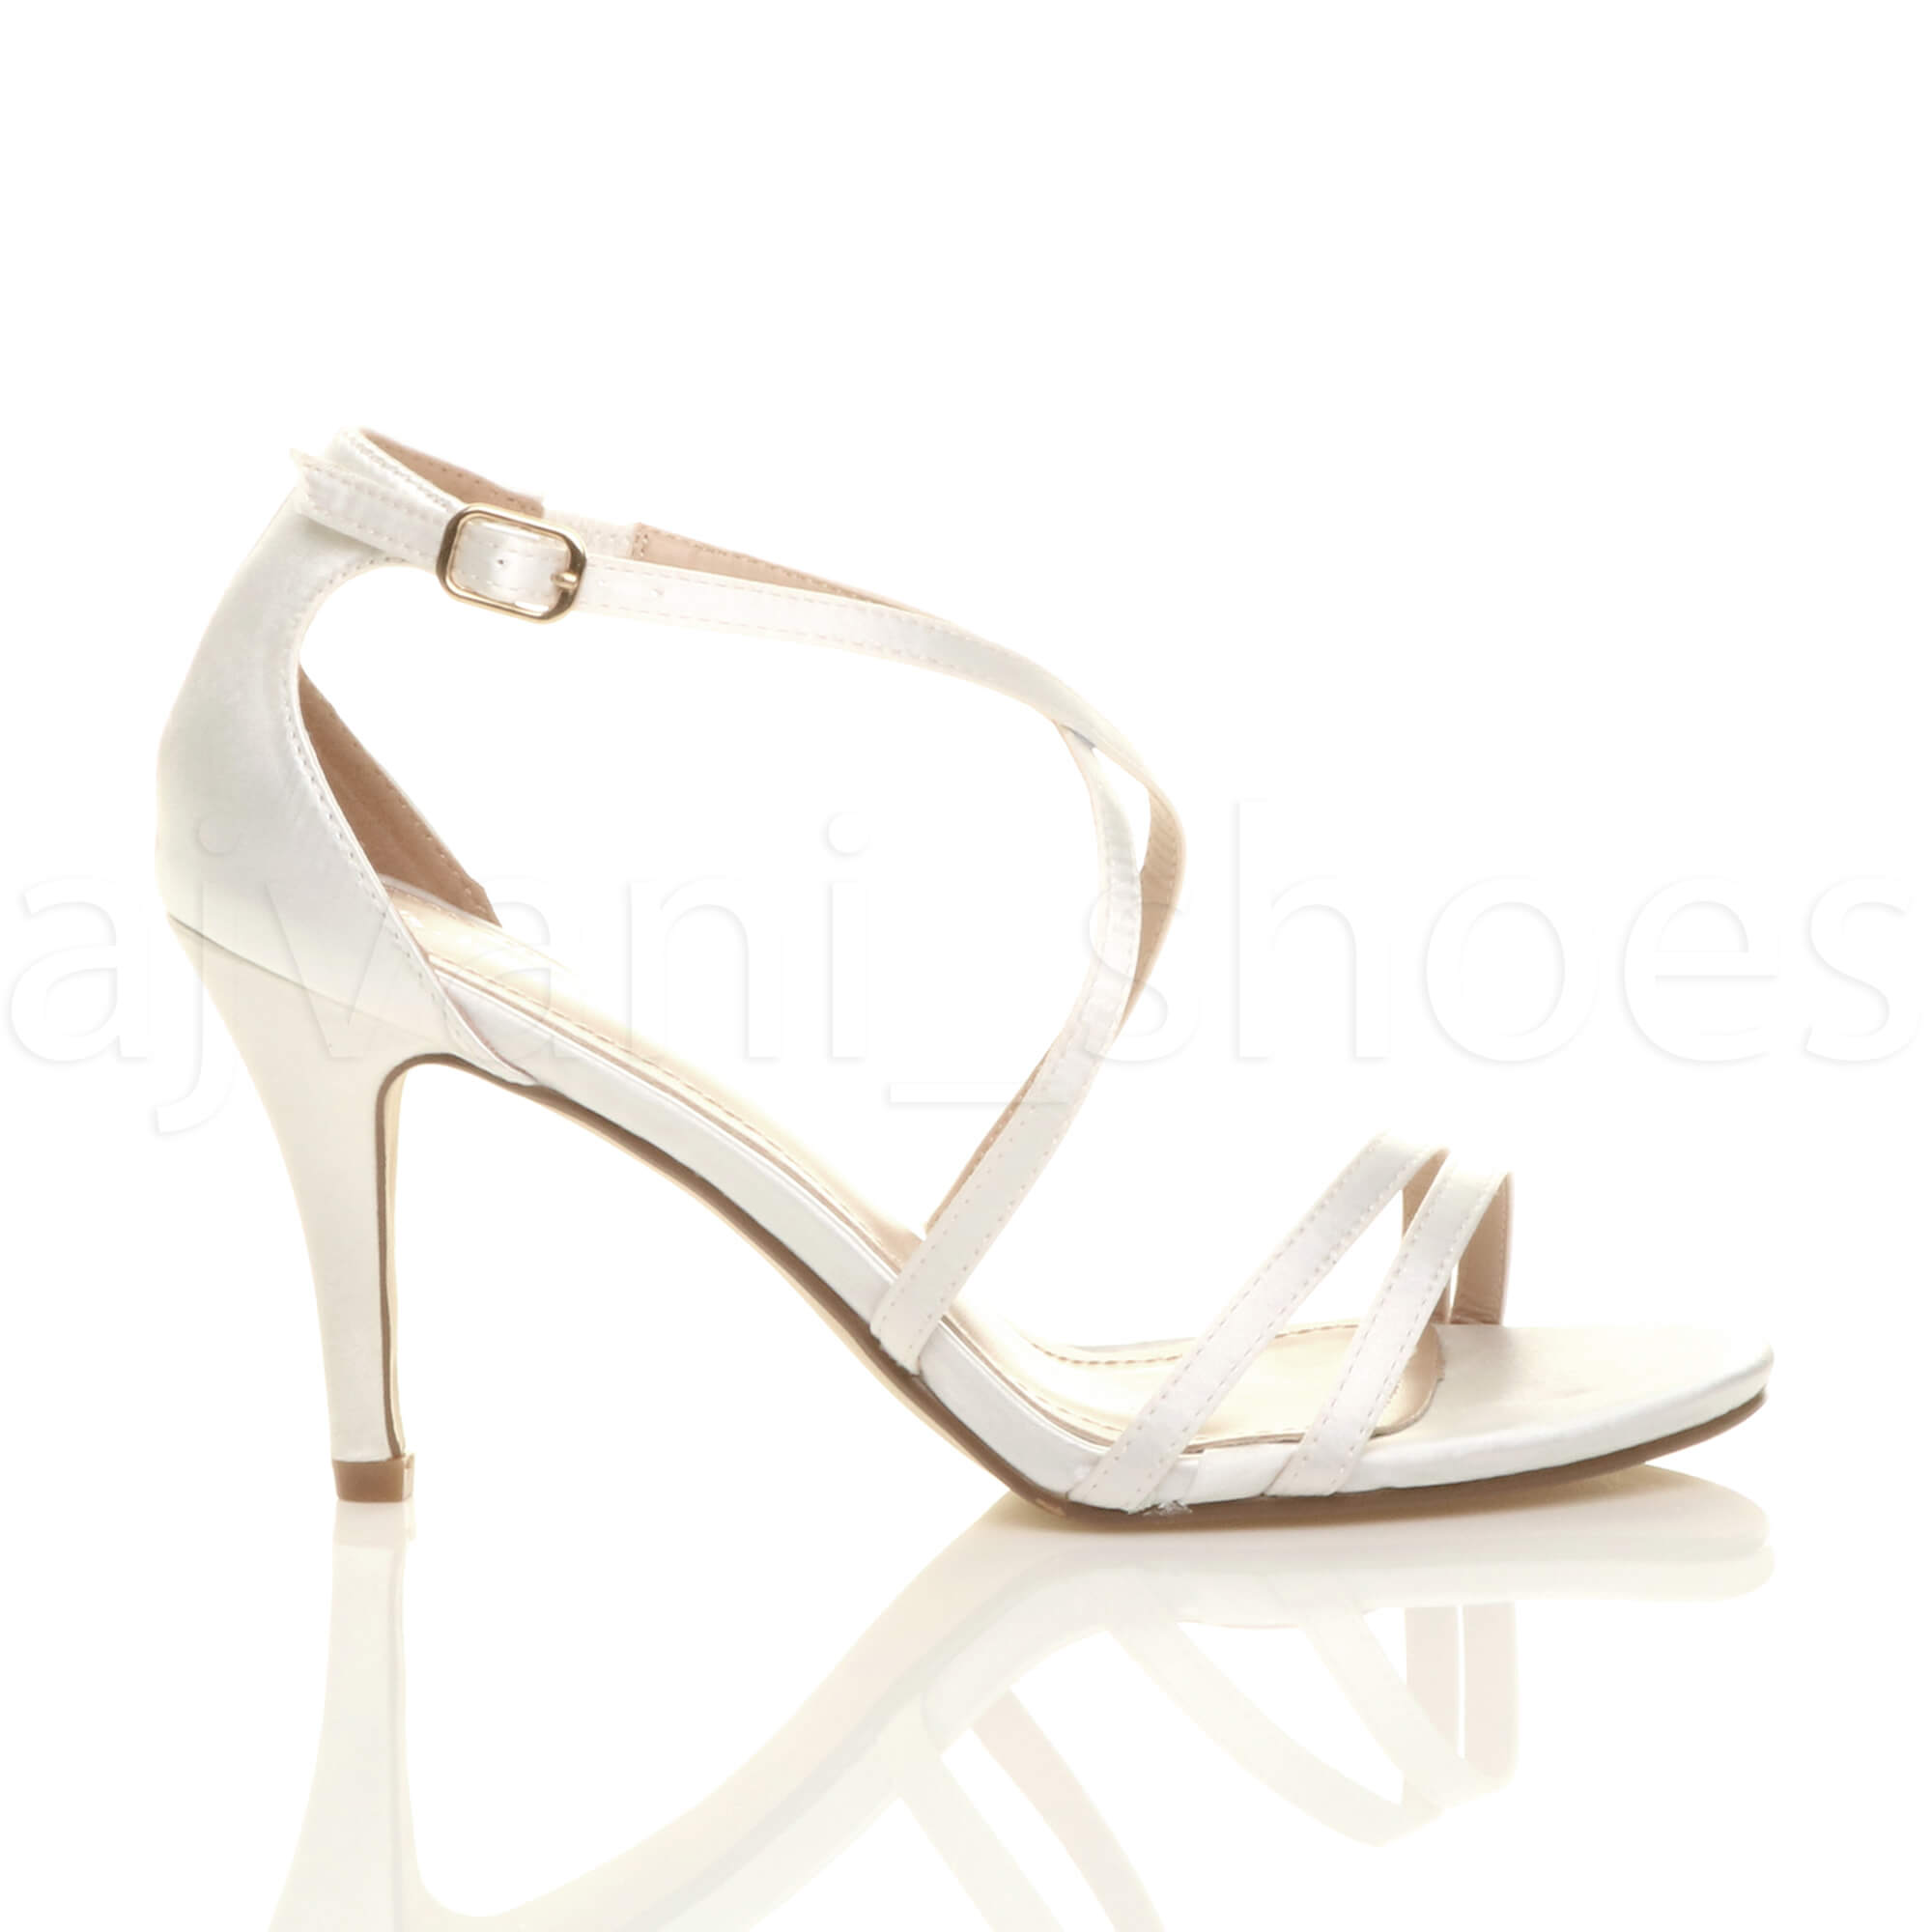 WOMENS-LADIES-MID-HIGH-HEEL-STRAPPY-CROSSOVER-WEDDING-PROM-SANDALS-SHOES-SIZE thumbnail 171